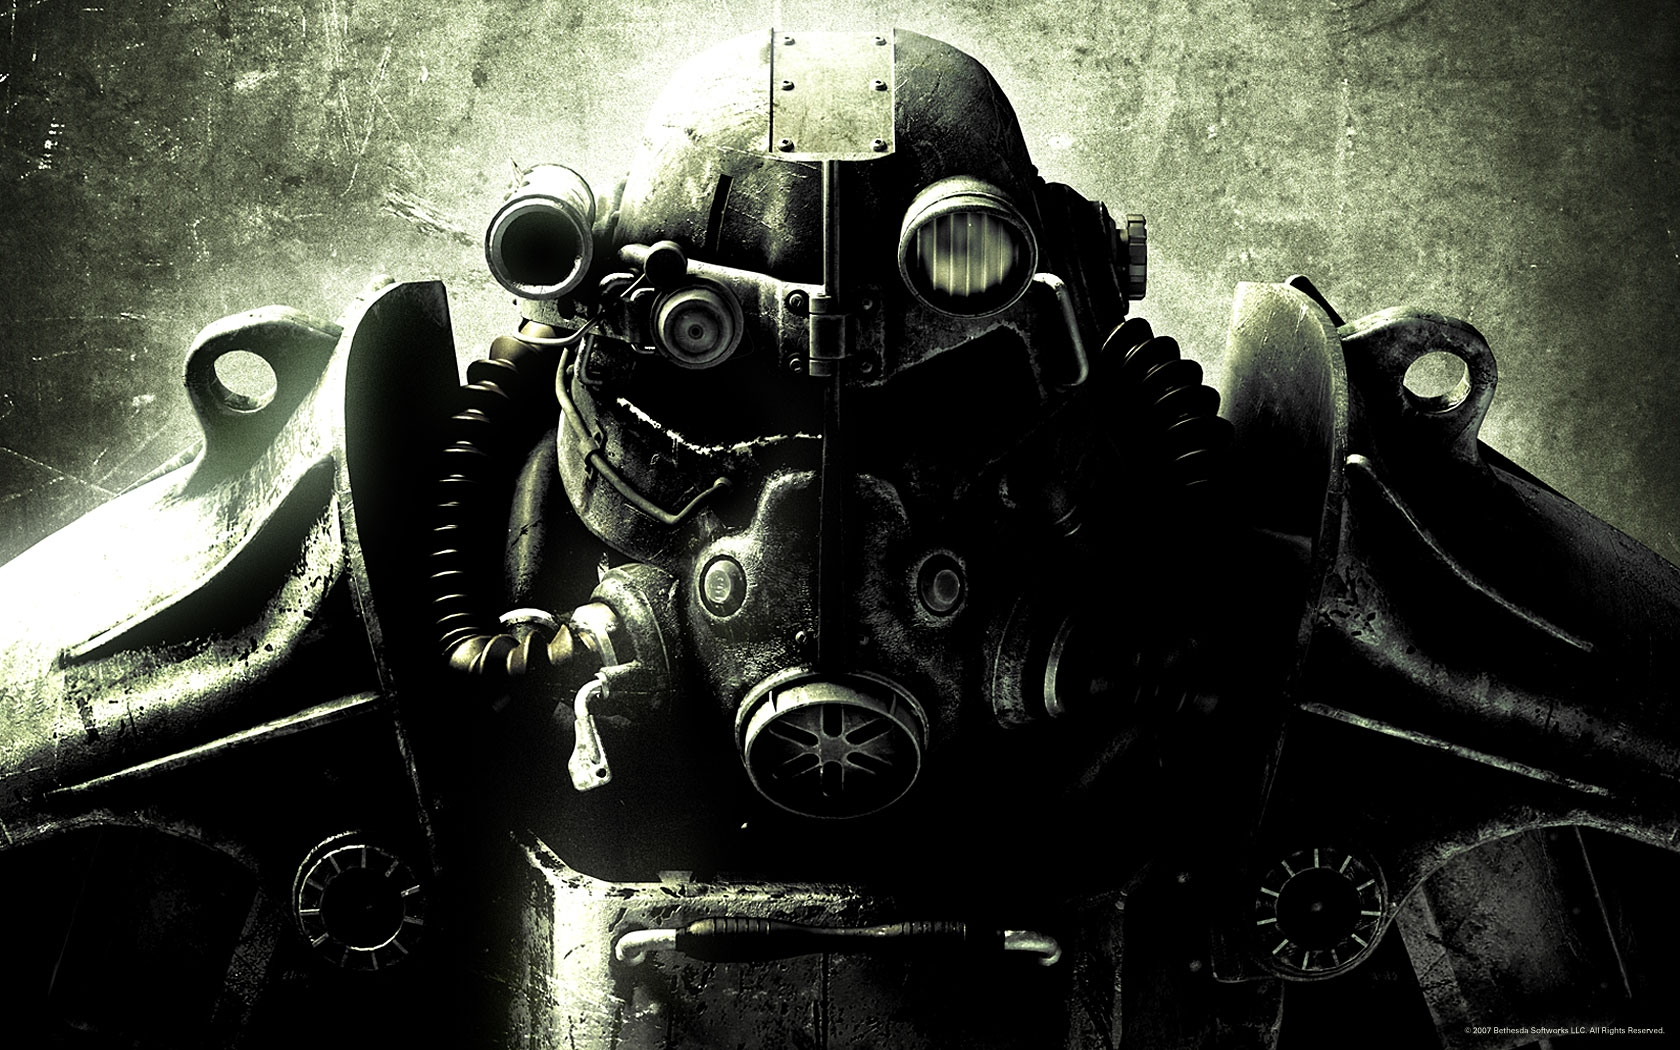 P.A.M.S – Power Armor Movement Sounds for Fallout 4